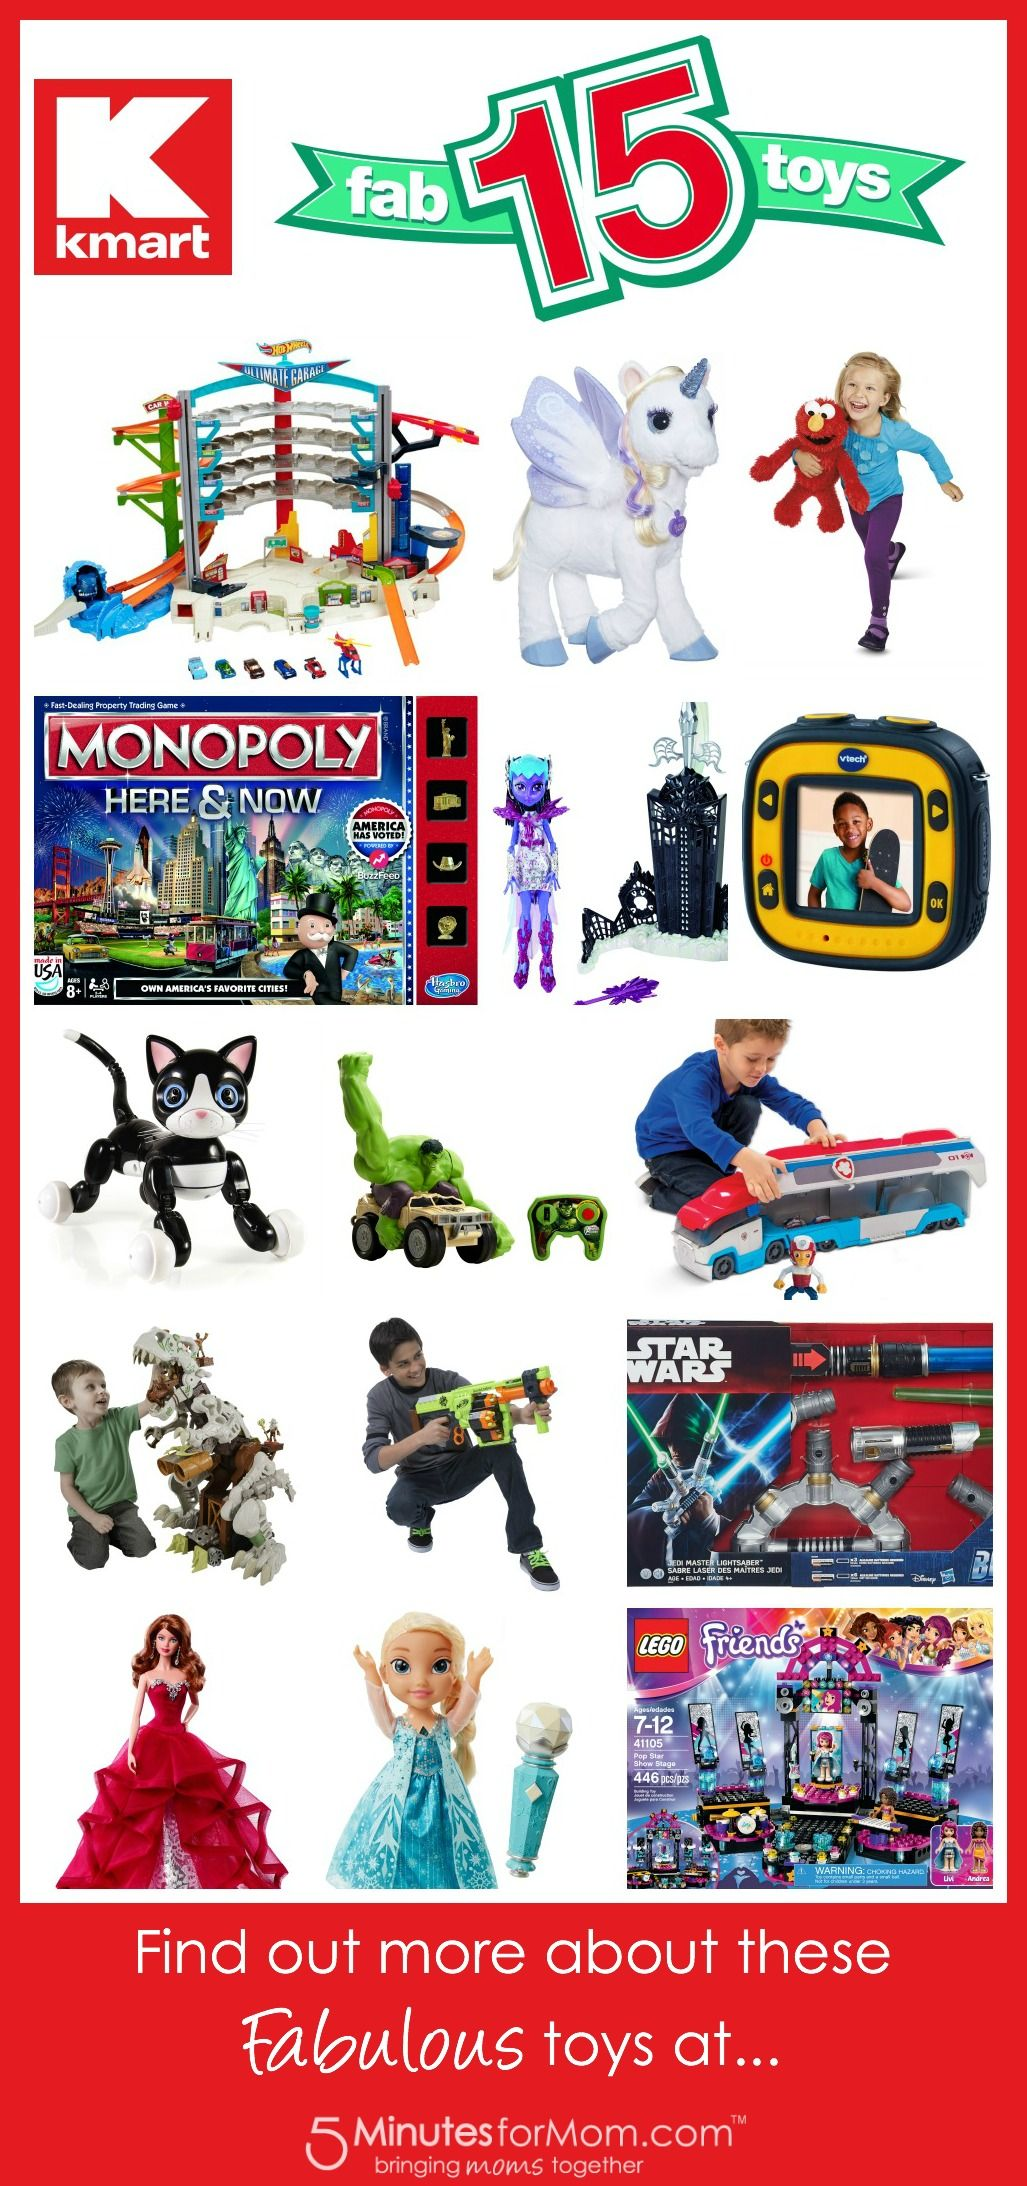 Make All The Kids on Your List Happy with these Kmart Fab15Toys